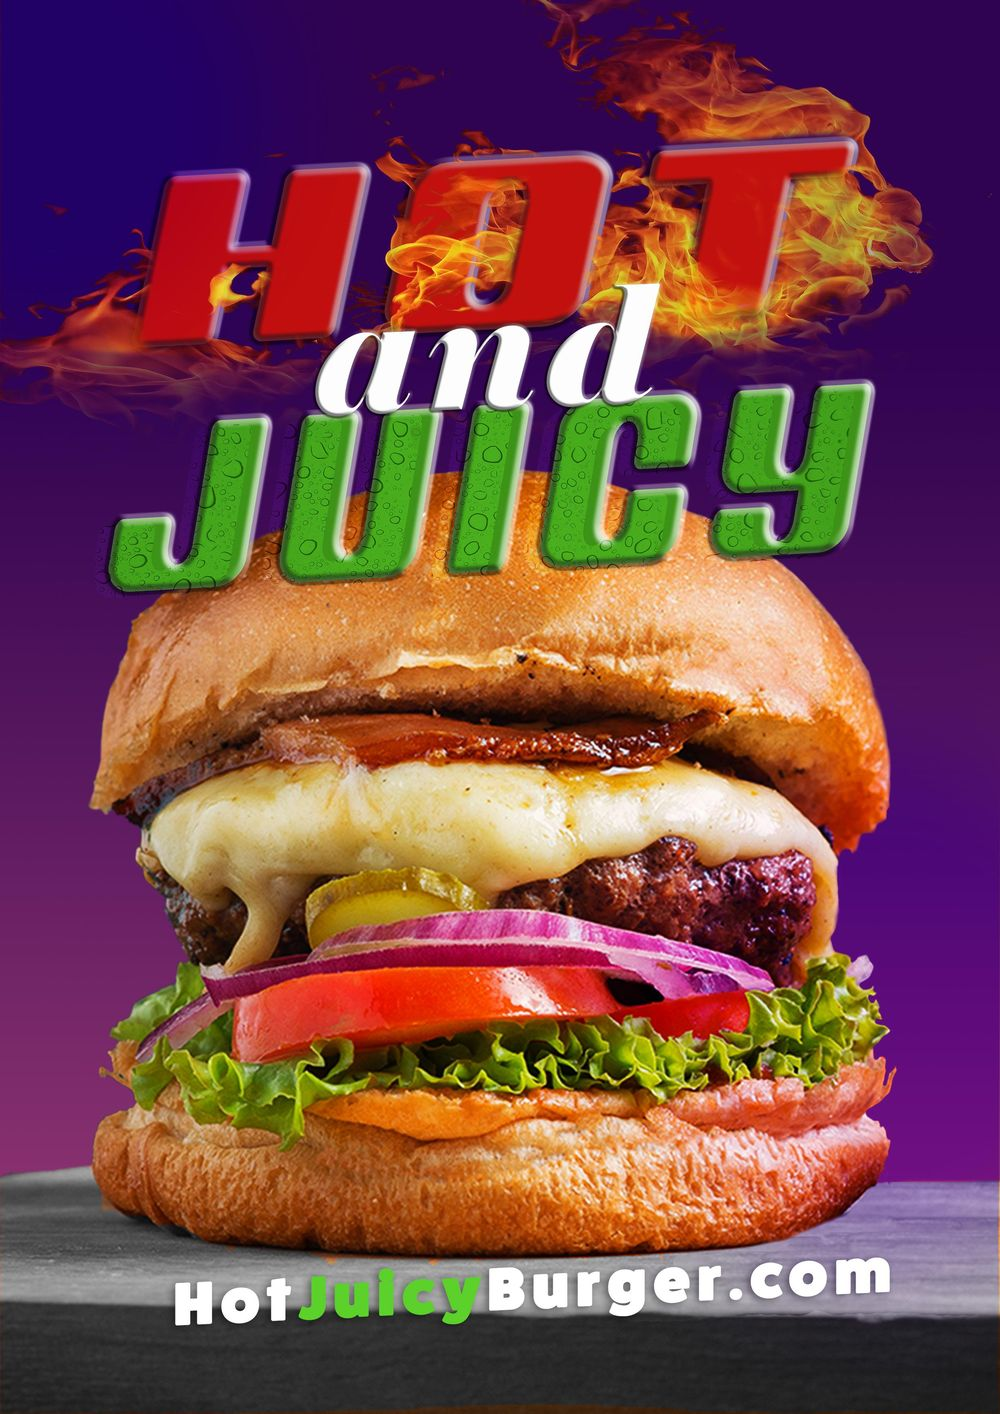 Hot and Juicy Burger - image 1 - student project